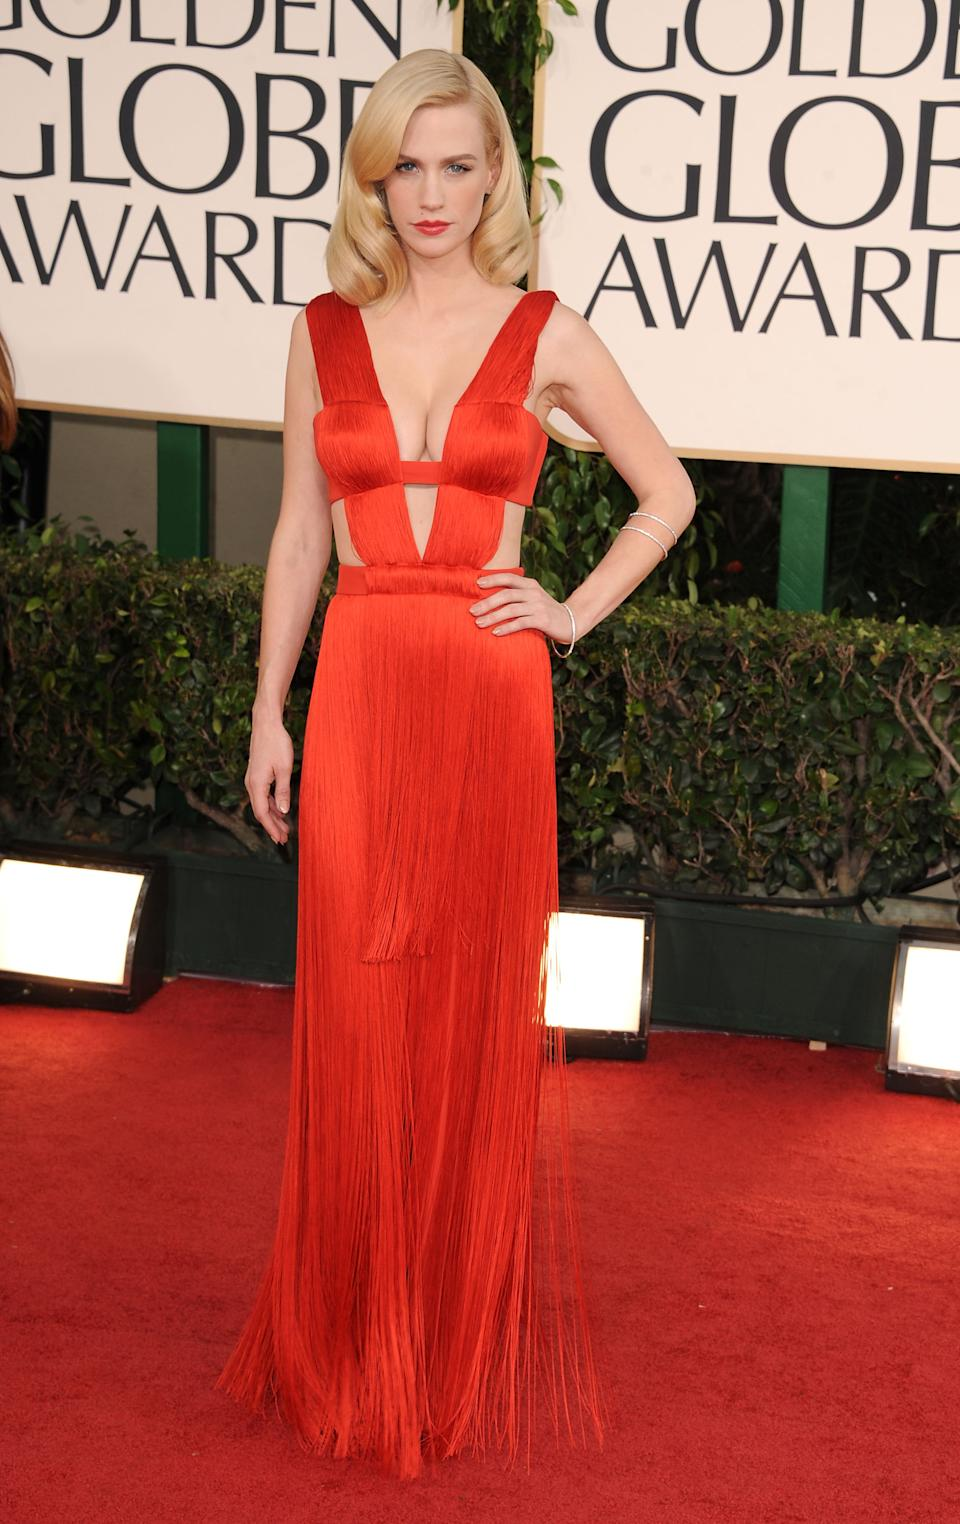 January Jones at the 68th Golden Globe Awards in 2011. (Image via Getty Images)